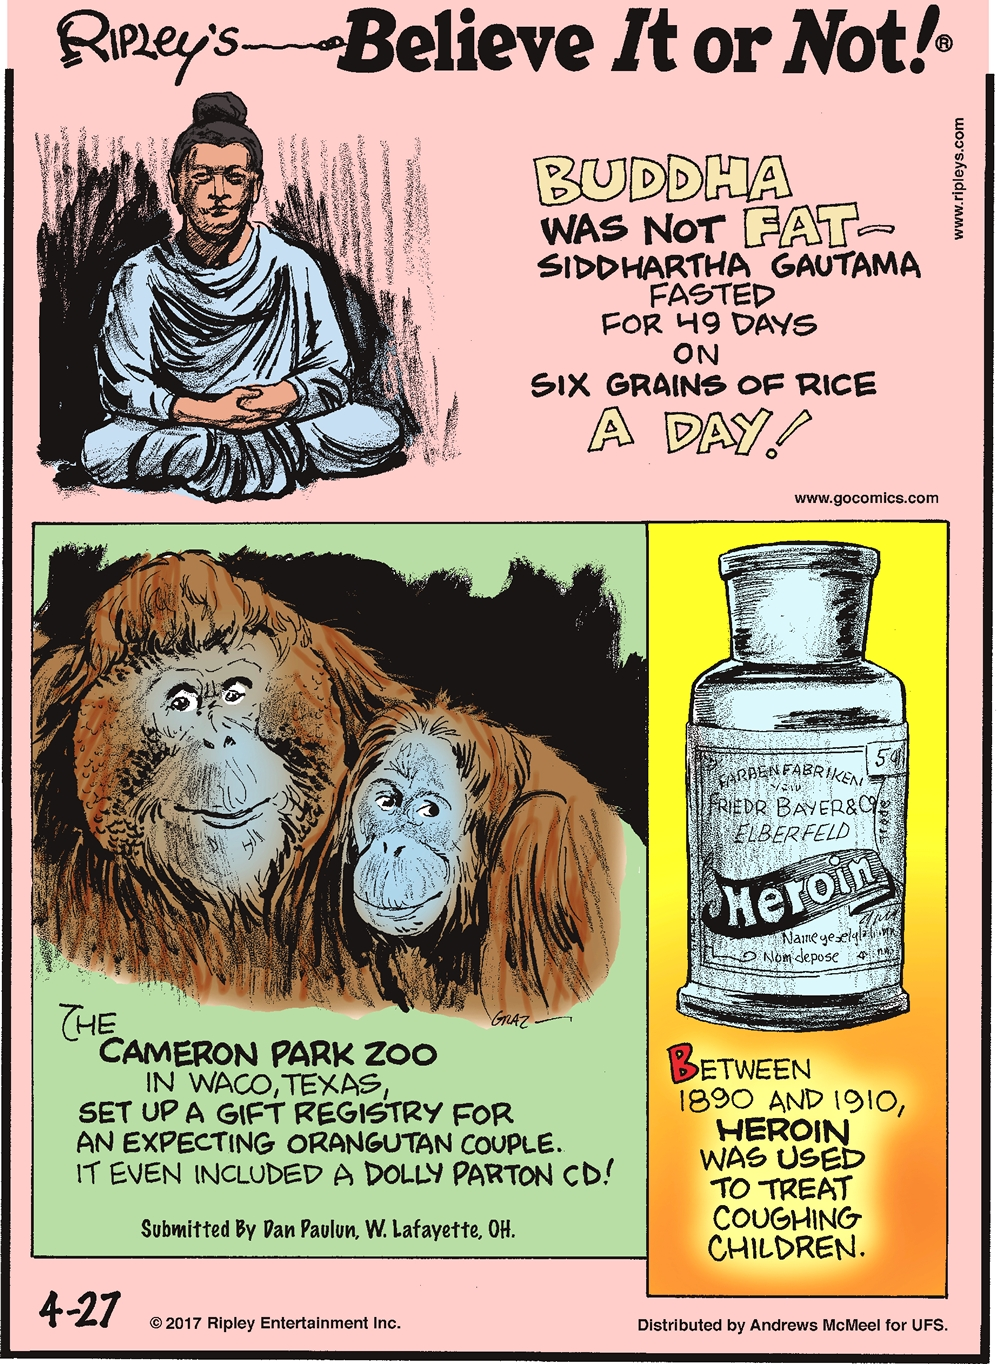 Buddha was not fat - Siddhartha Gautama fasted for 49 days on six grains of rice a day!-------------------- The Cameron Park Zoo in Waco, Texas, set up a gift registry for an expecting orangutan couple. It even included a Dolly Parton CD! Submitted by Dan Paulun, W. Lafayette, OH.------------------ Between 1890 and 1910, heroin was used to treat coughing children.